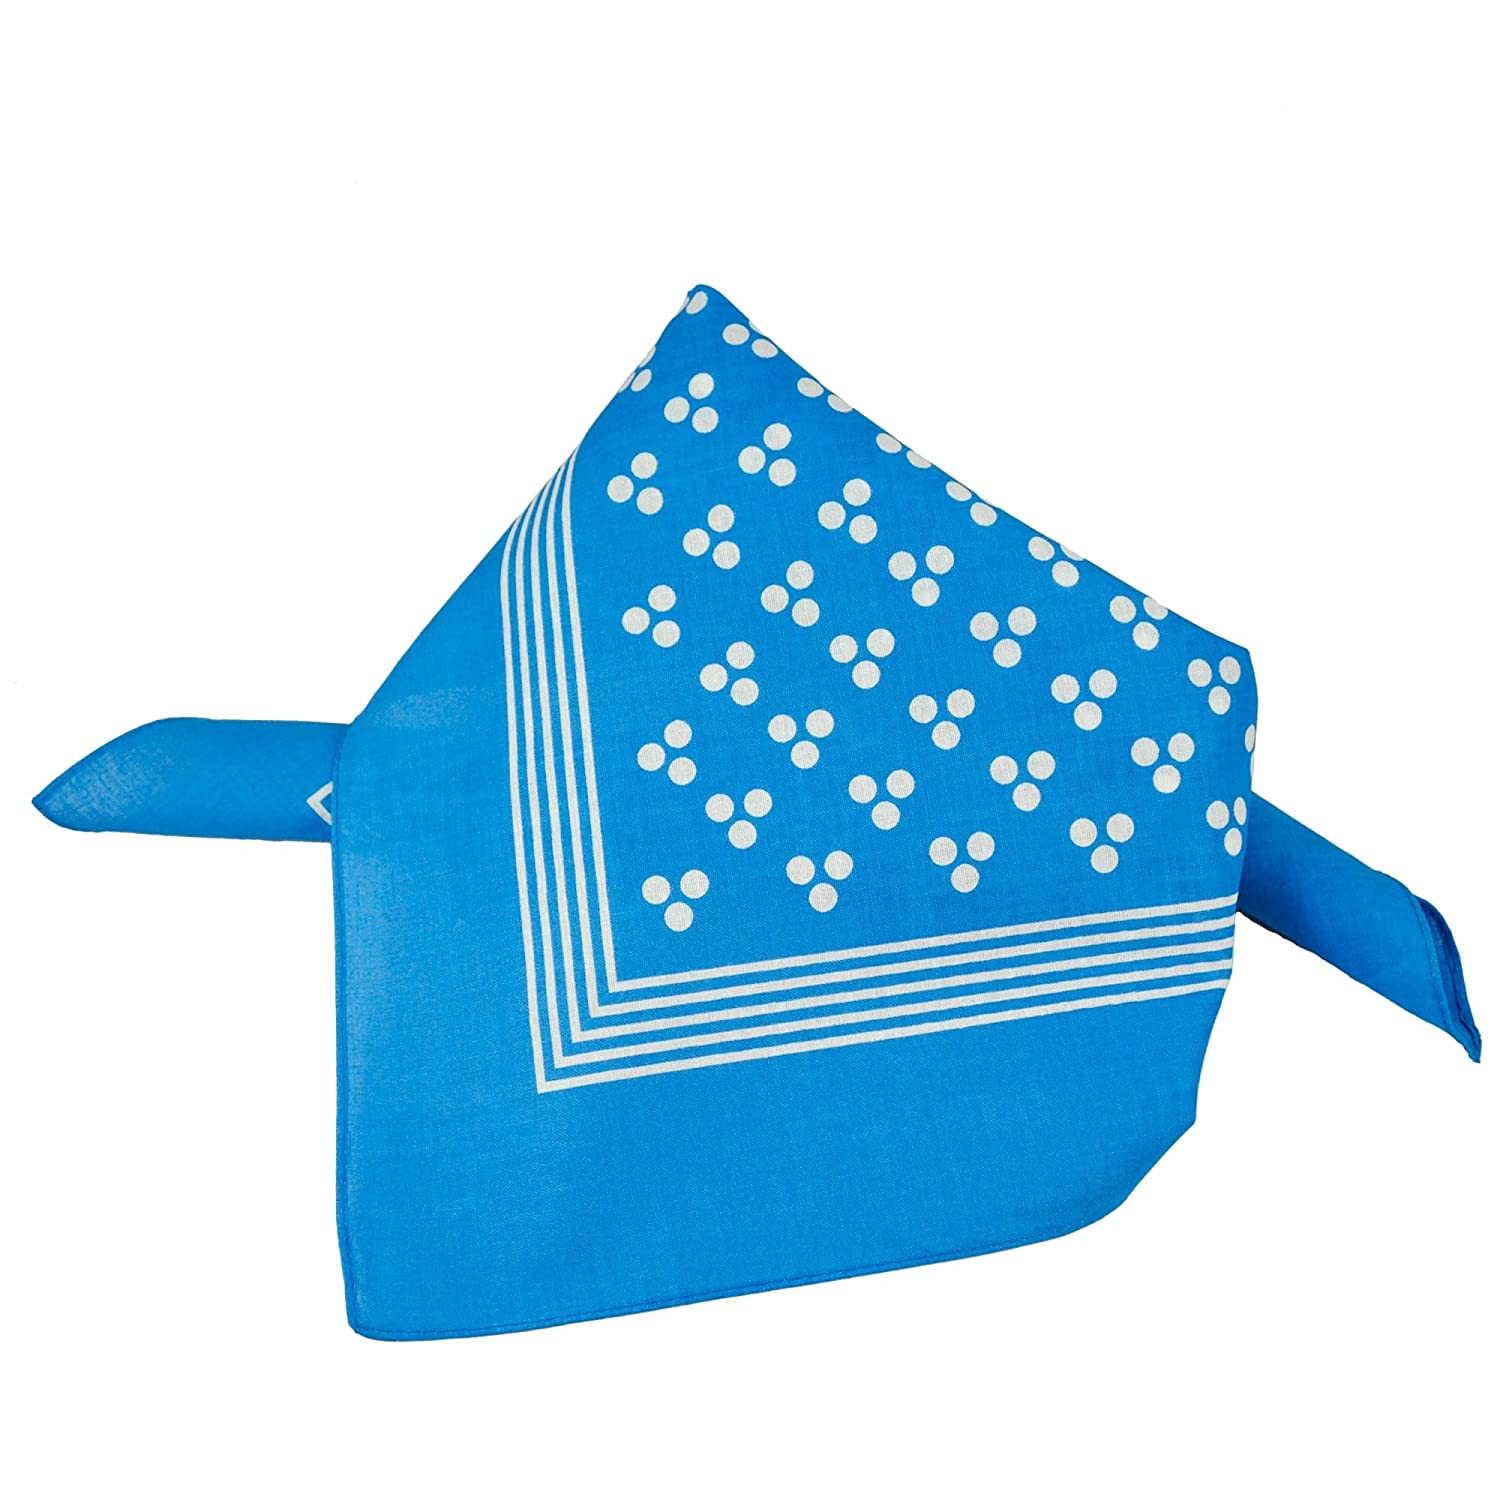 Blue With White 3-Dot & Stripes Bandana Neckerchief Ties Planet